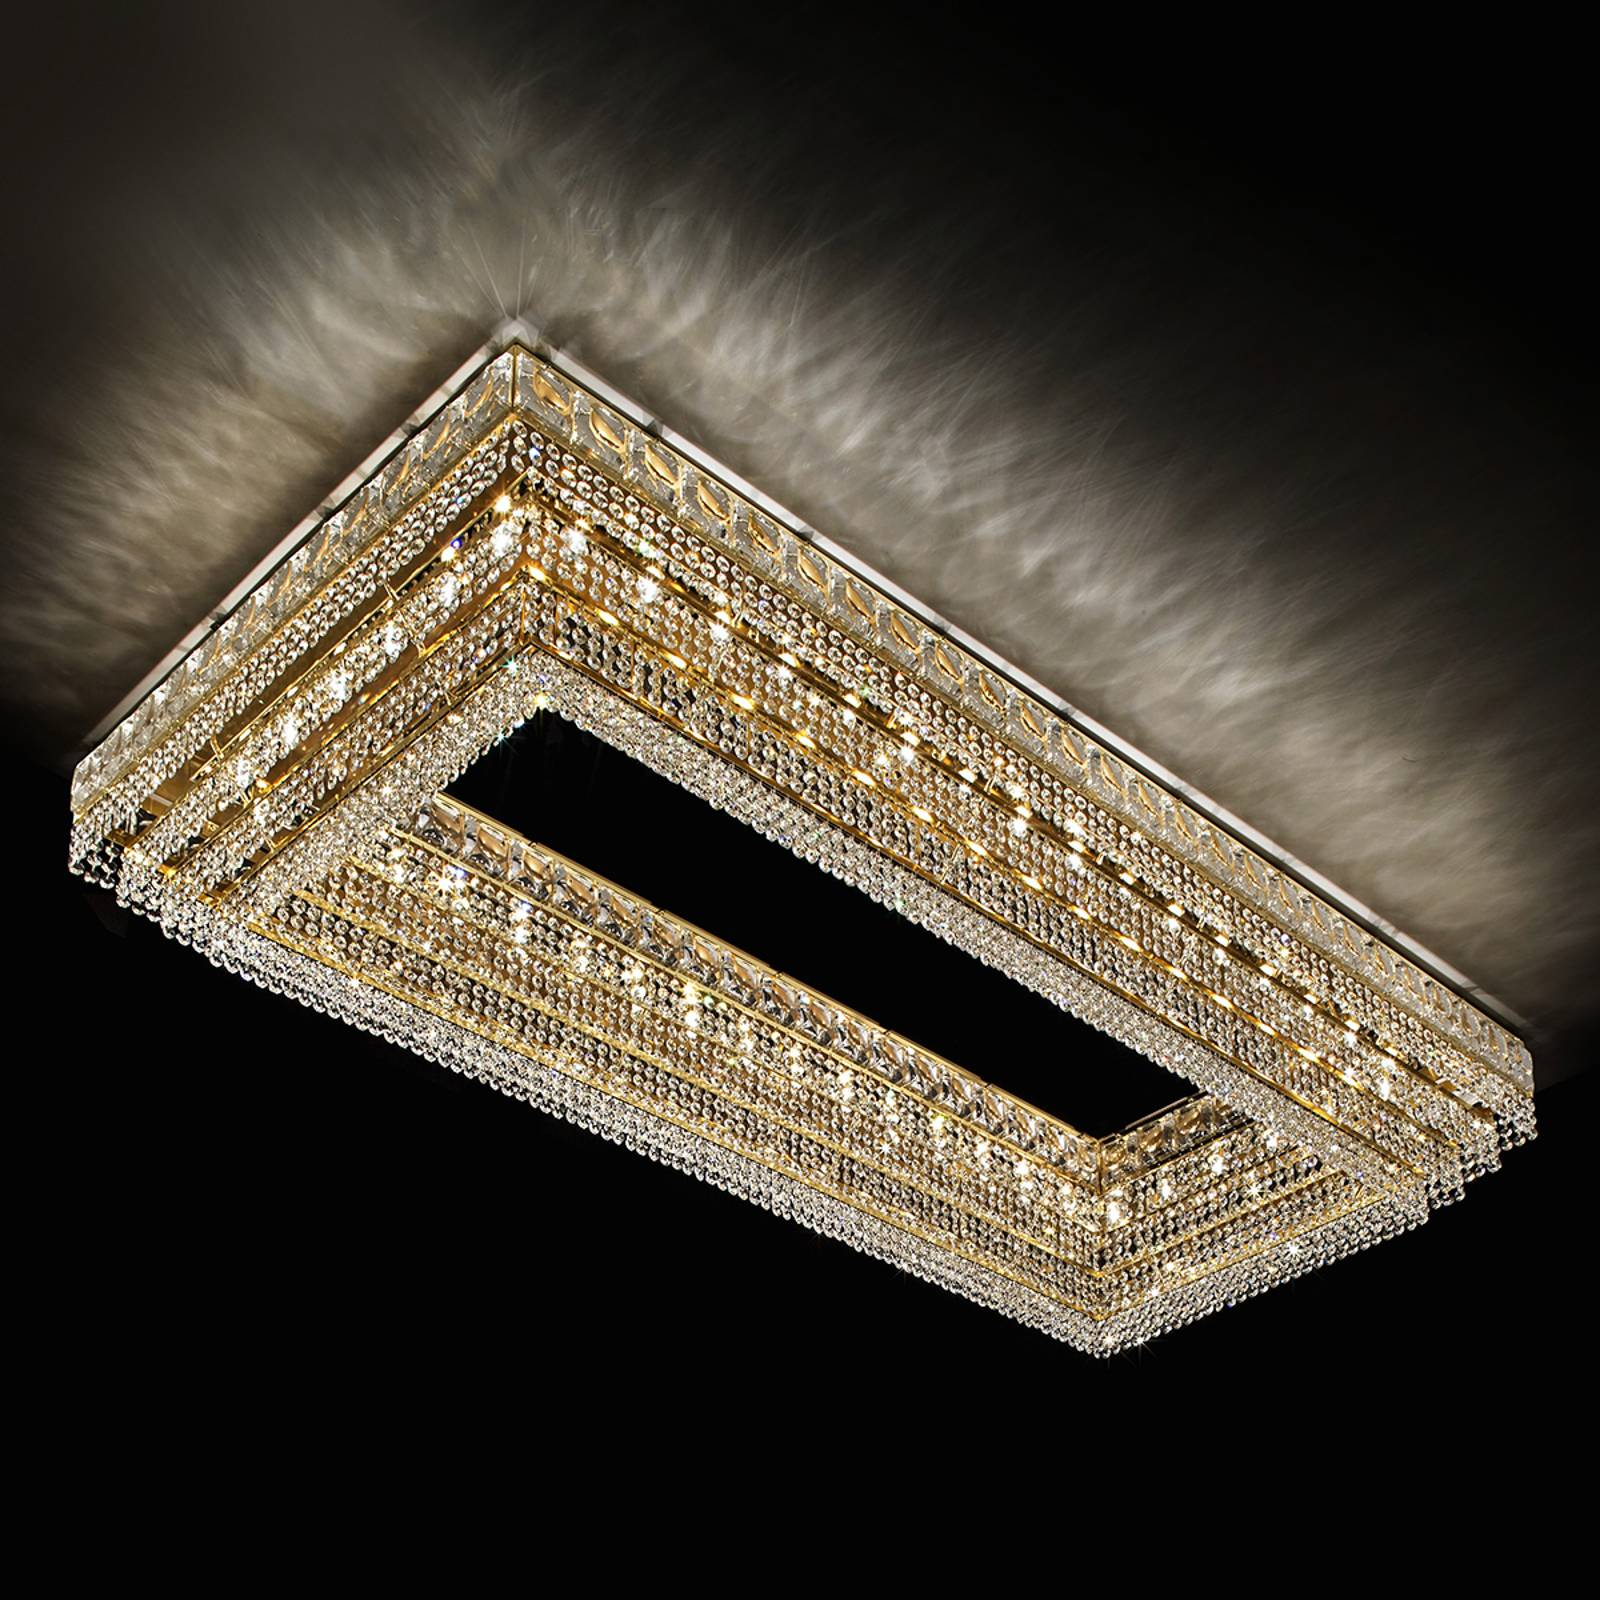 Habsburg - sparkling ceiling light from Masiero